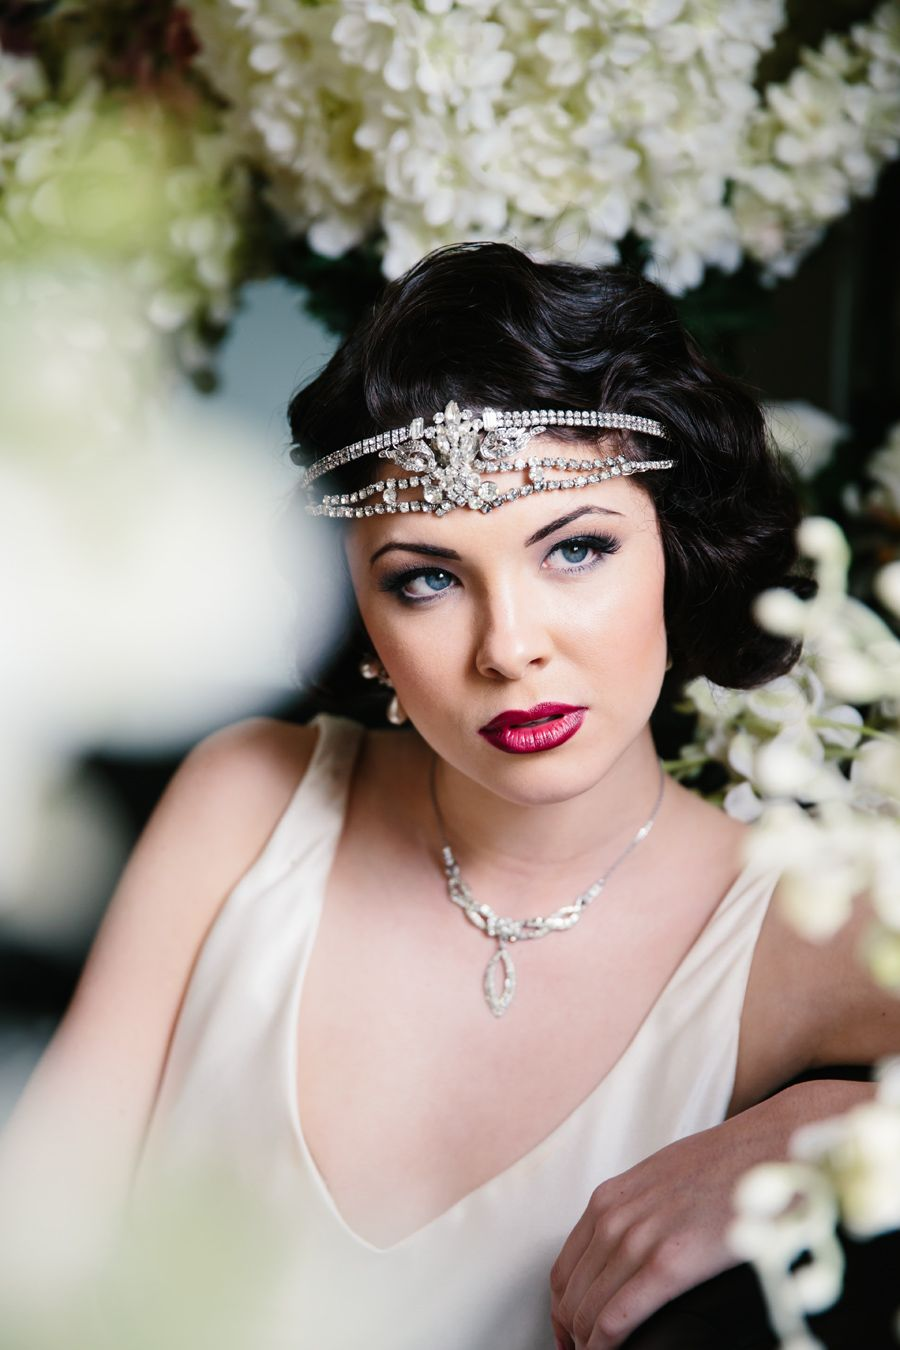 The Great Gatsby Inspired Photo Shoot » White Images | Fashion ...